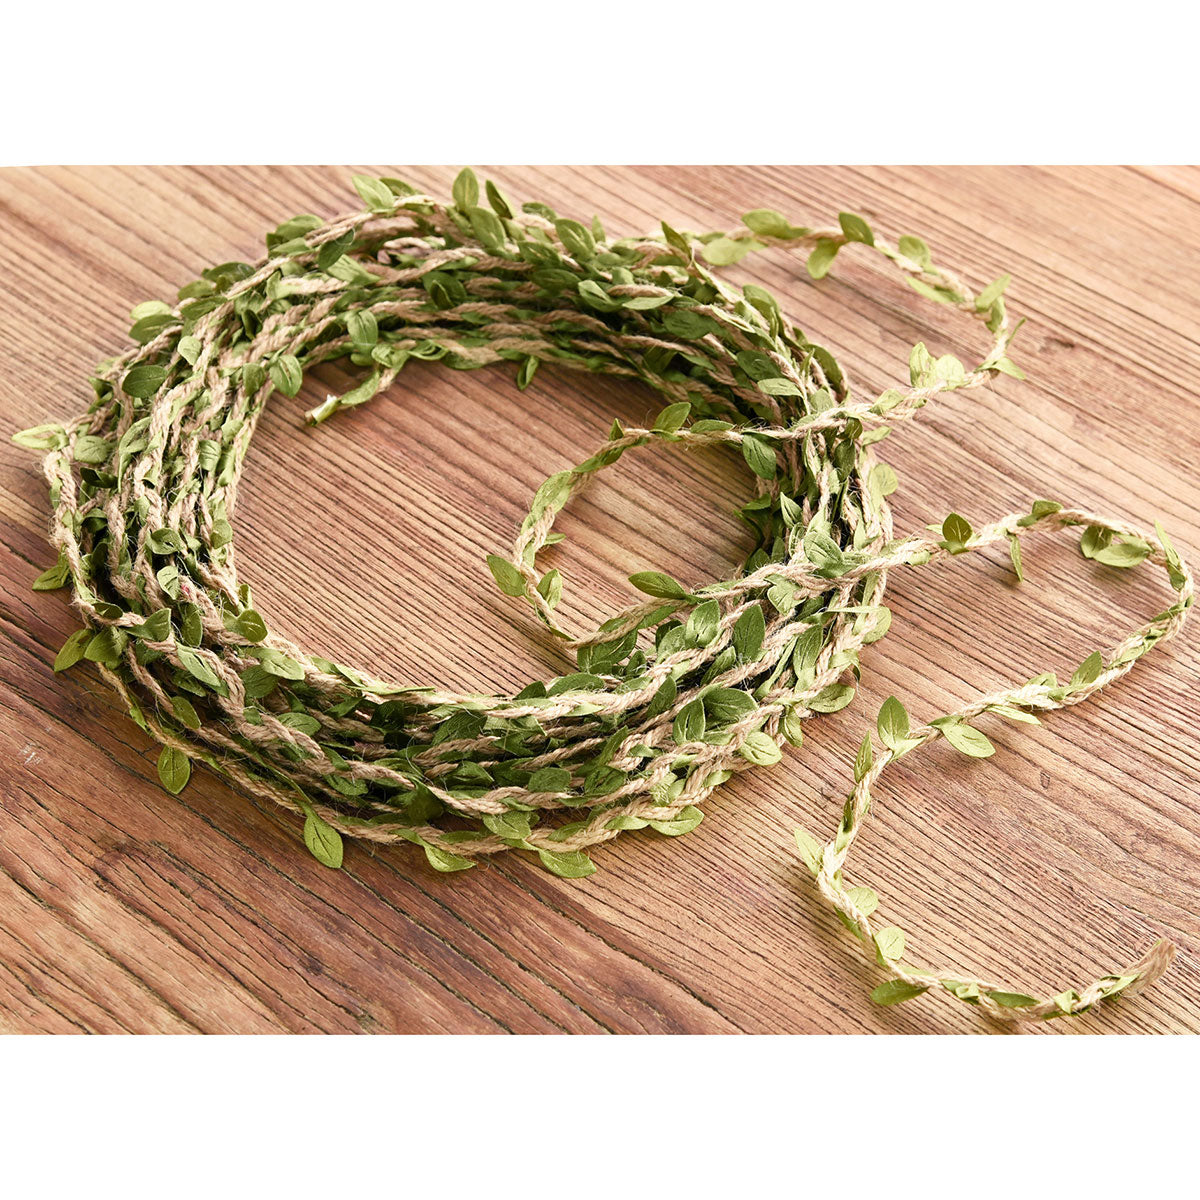 Natural Jute Twine Leaf Ribbon, Jute Rope Cord Tag String Roll, for Gift Wrapping Packaging Decoration/DIY Arts & Crafts, 10 metres (394 inches)